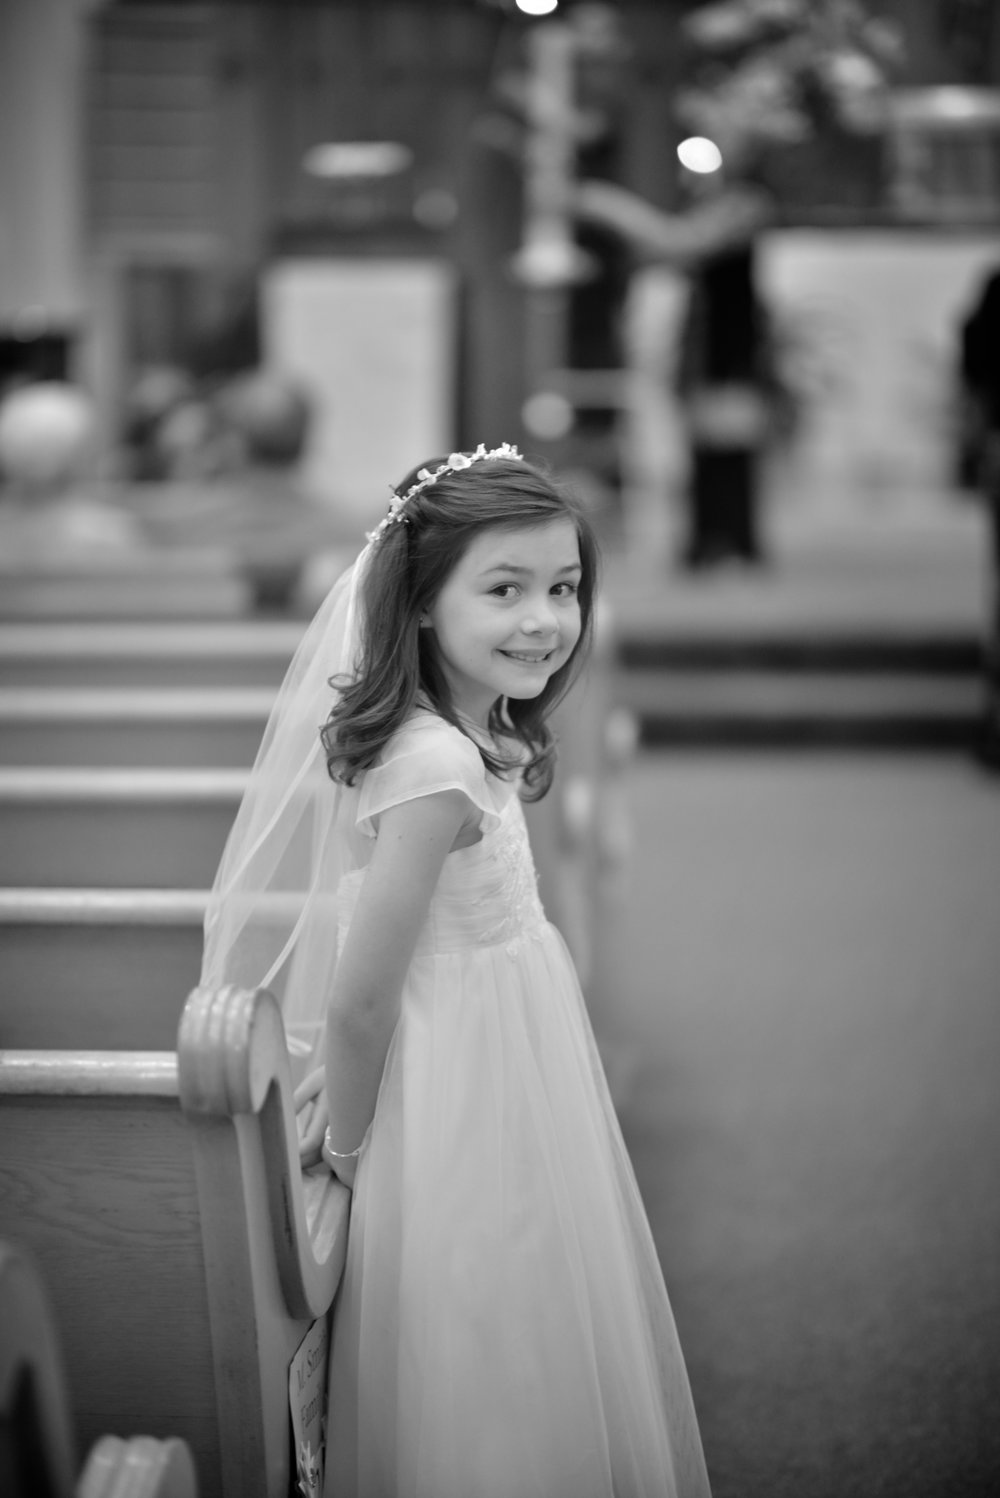 Mack First Communion # 9.jpg